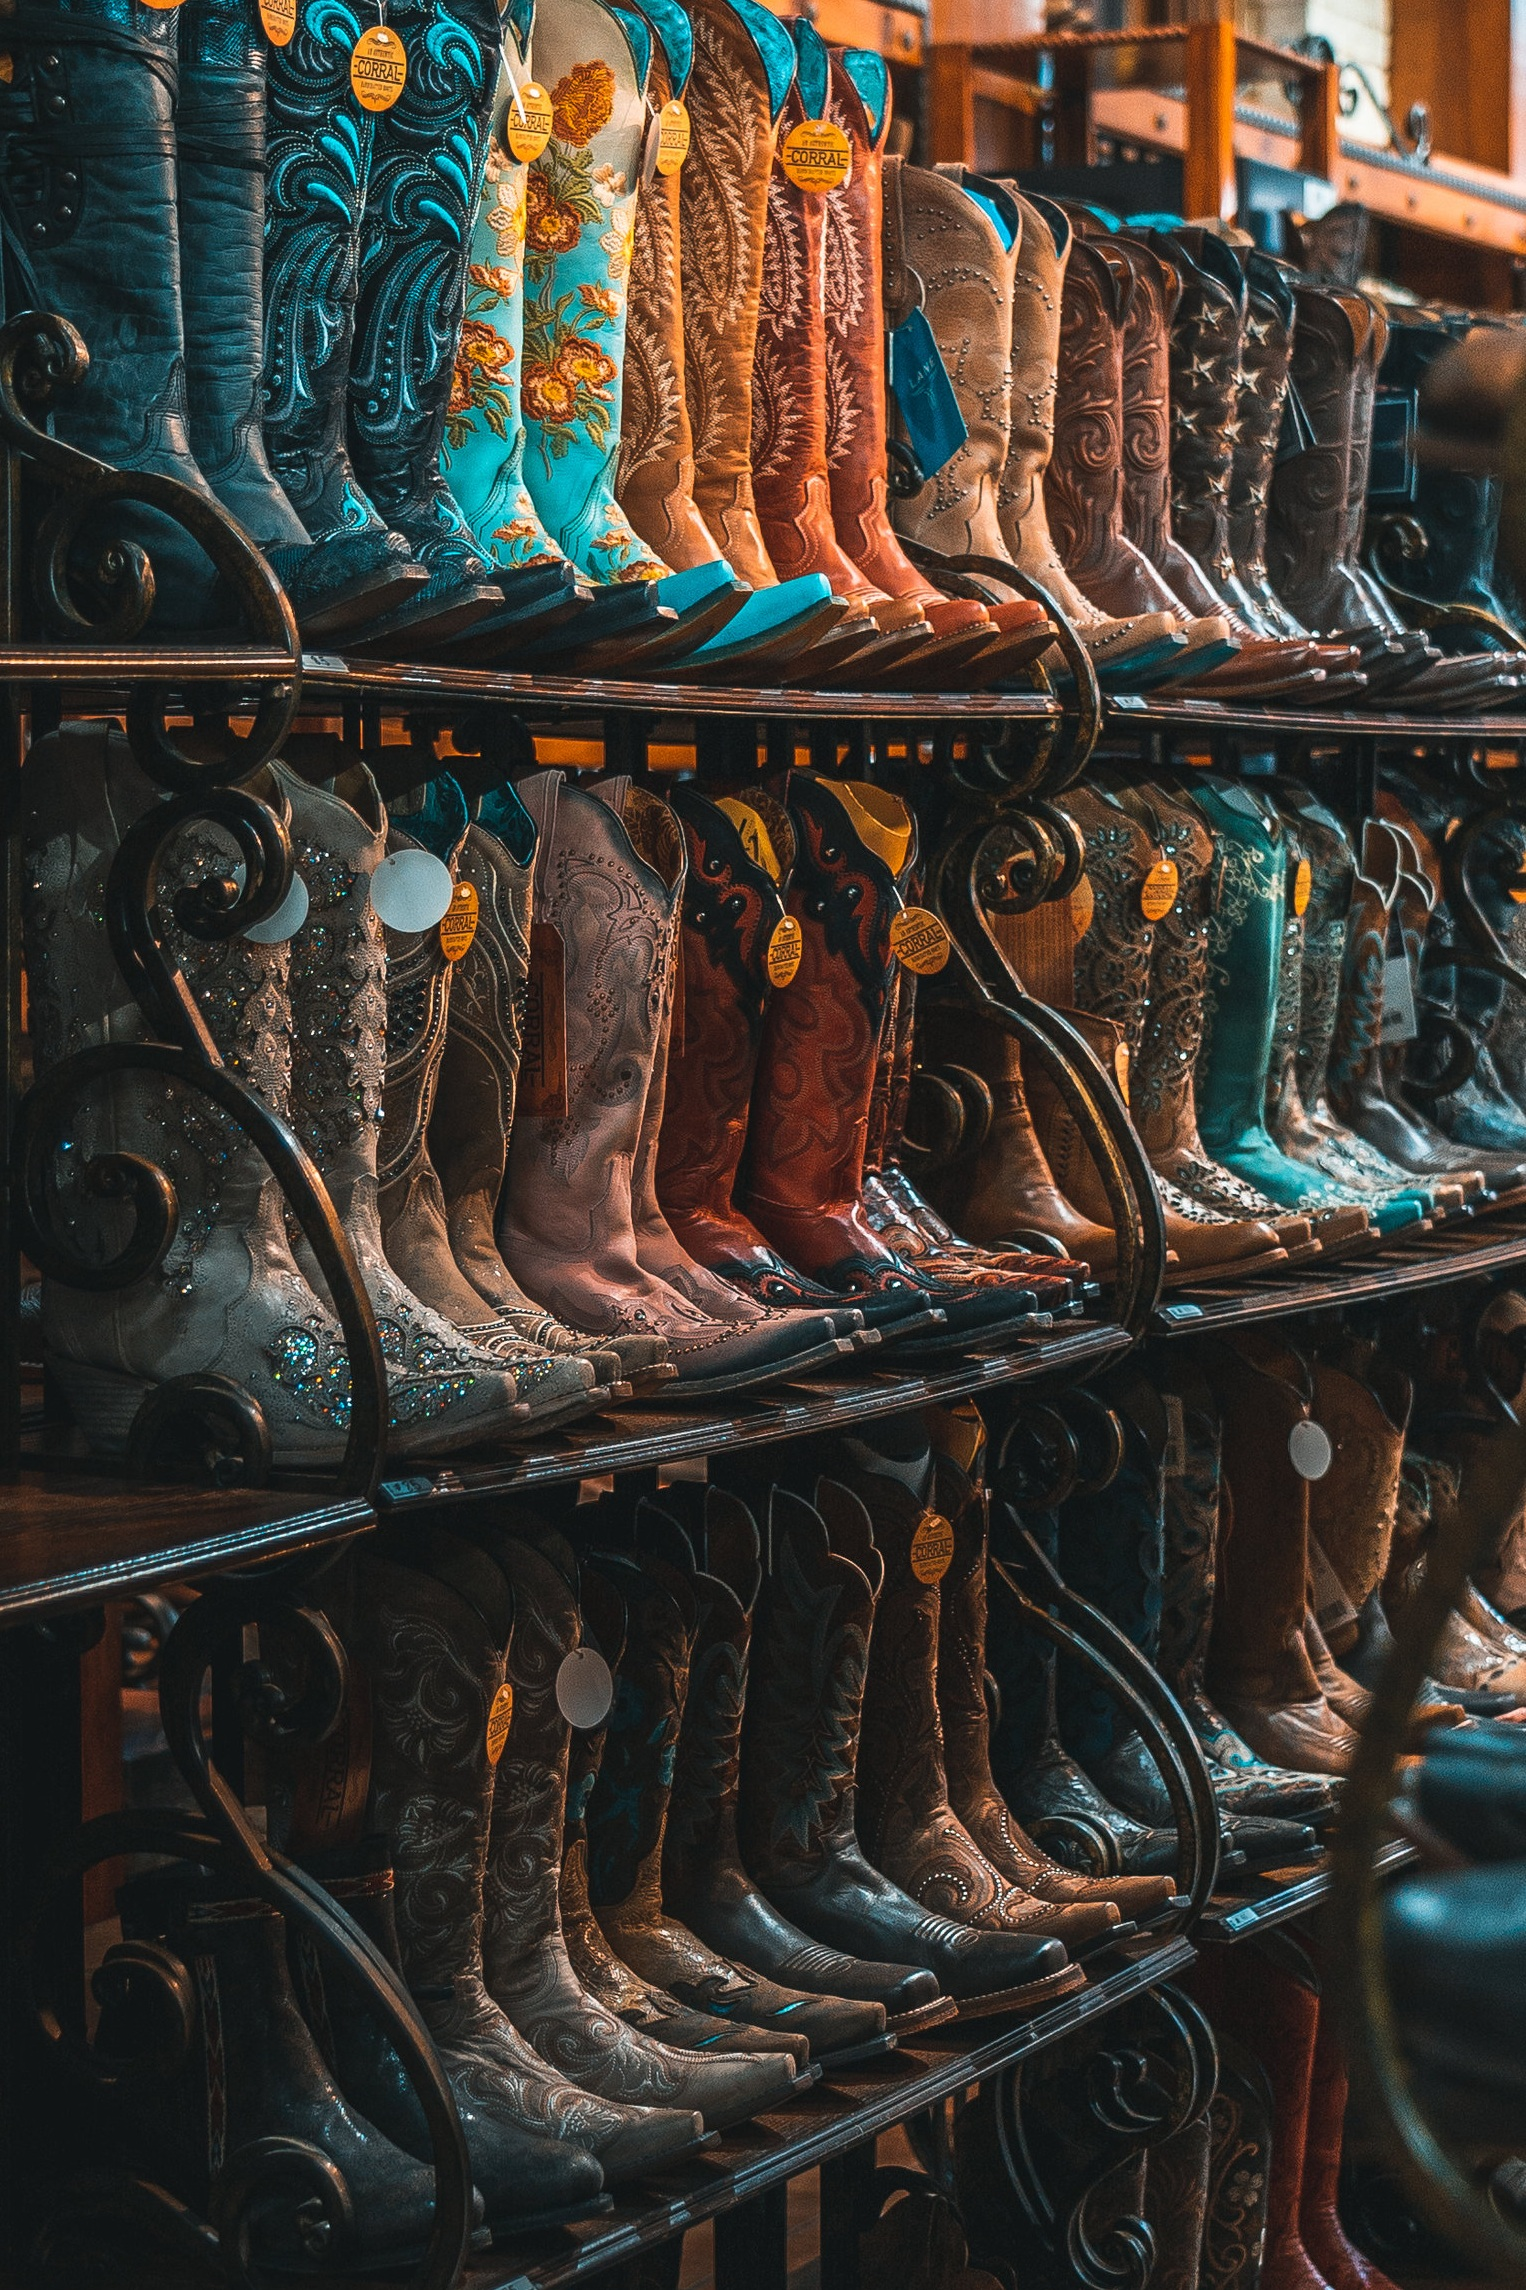 Our Events - Boot Scootin' at BelvederesEvery Wednesday 6:30-9PM @ Belvederes Ultra-Dive in LawrencevilleSteel Town HoedownMonthly Saturday Night DancesSeptember 14, 7:00-11:00PM@ Element in Shadyside